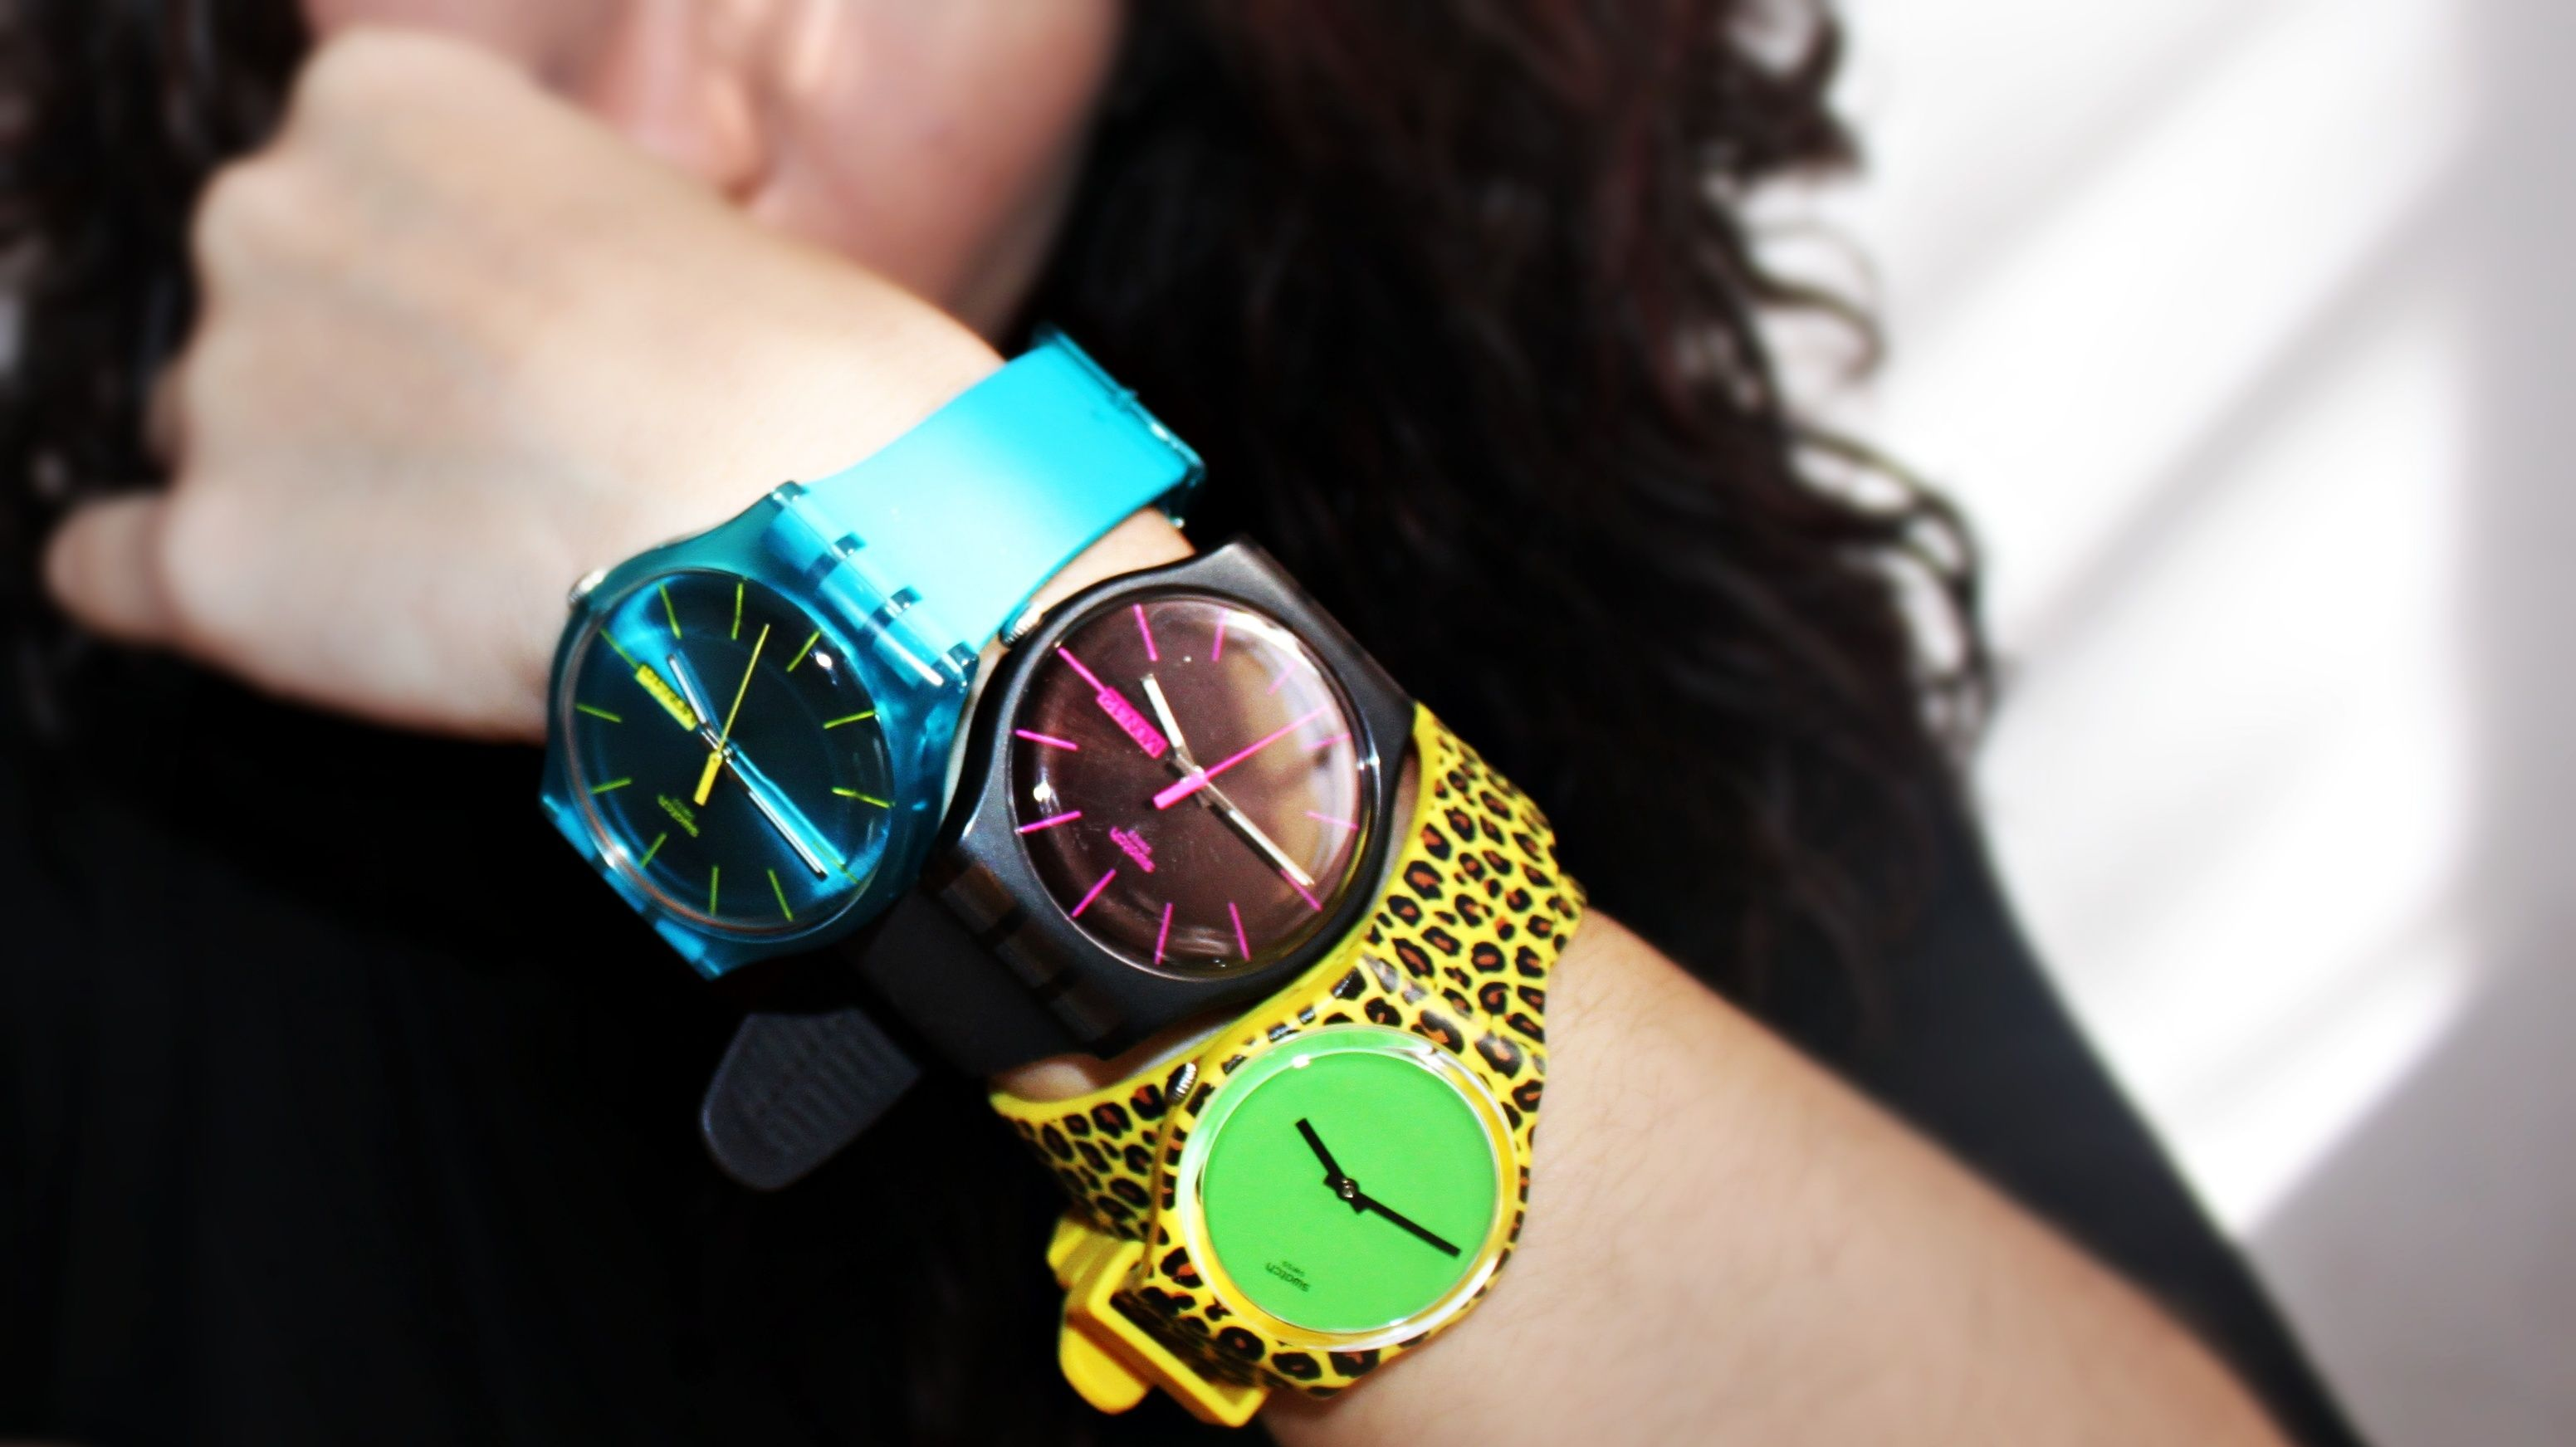 Love #Swatch #Watches - I'm Swatch girl from wayyyy back!!